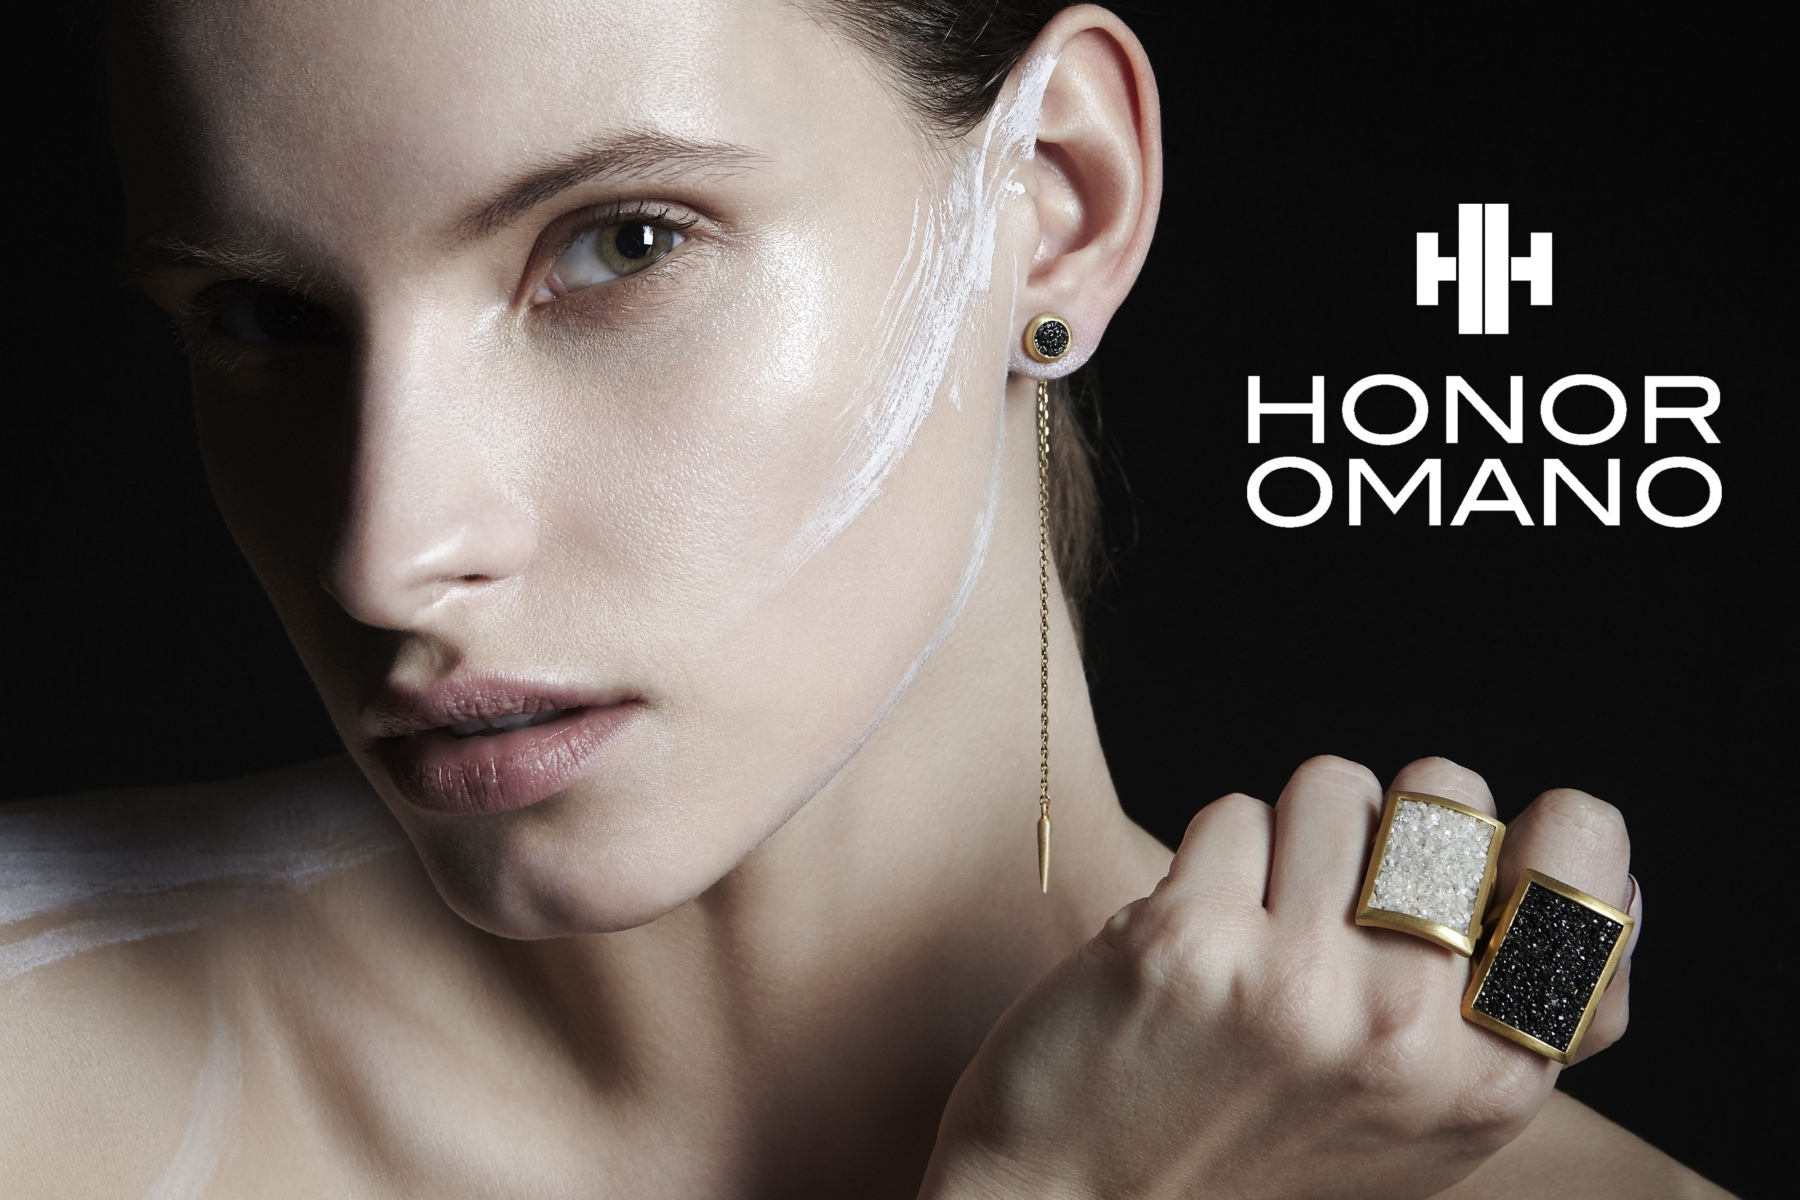 Viktorija for HONOR OMANO